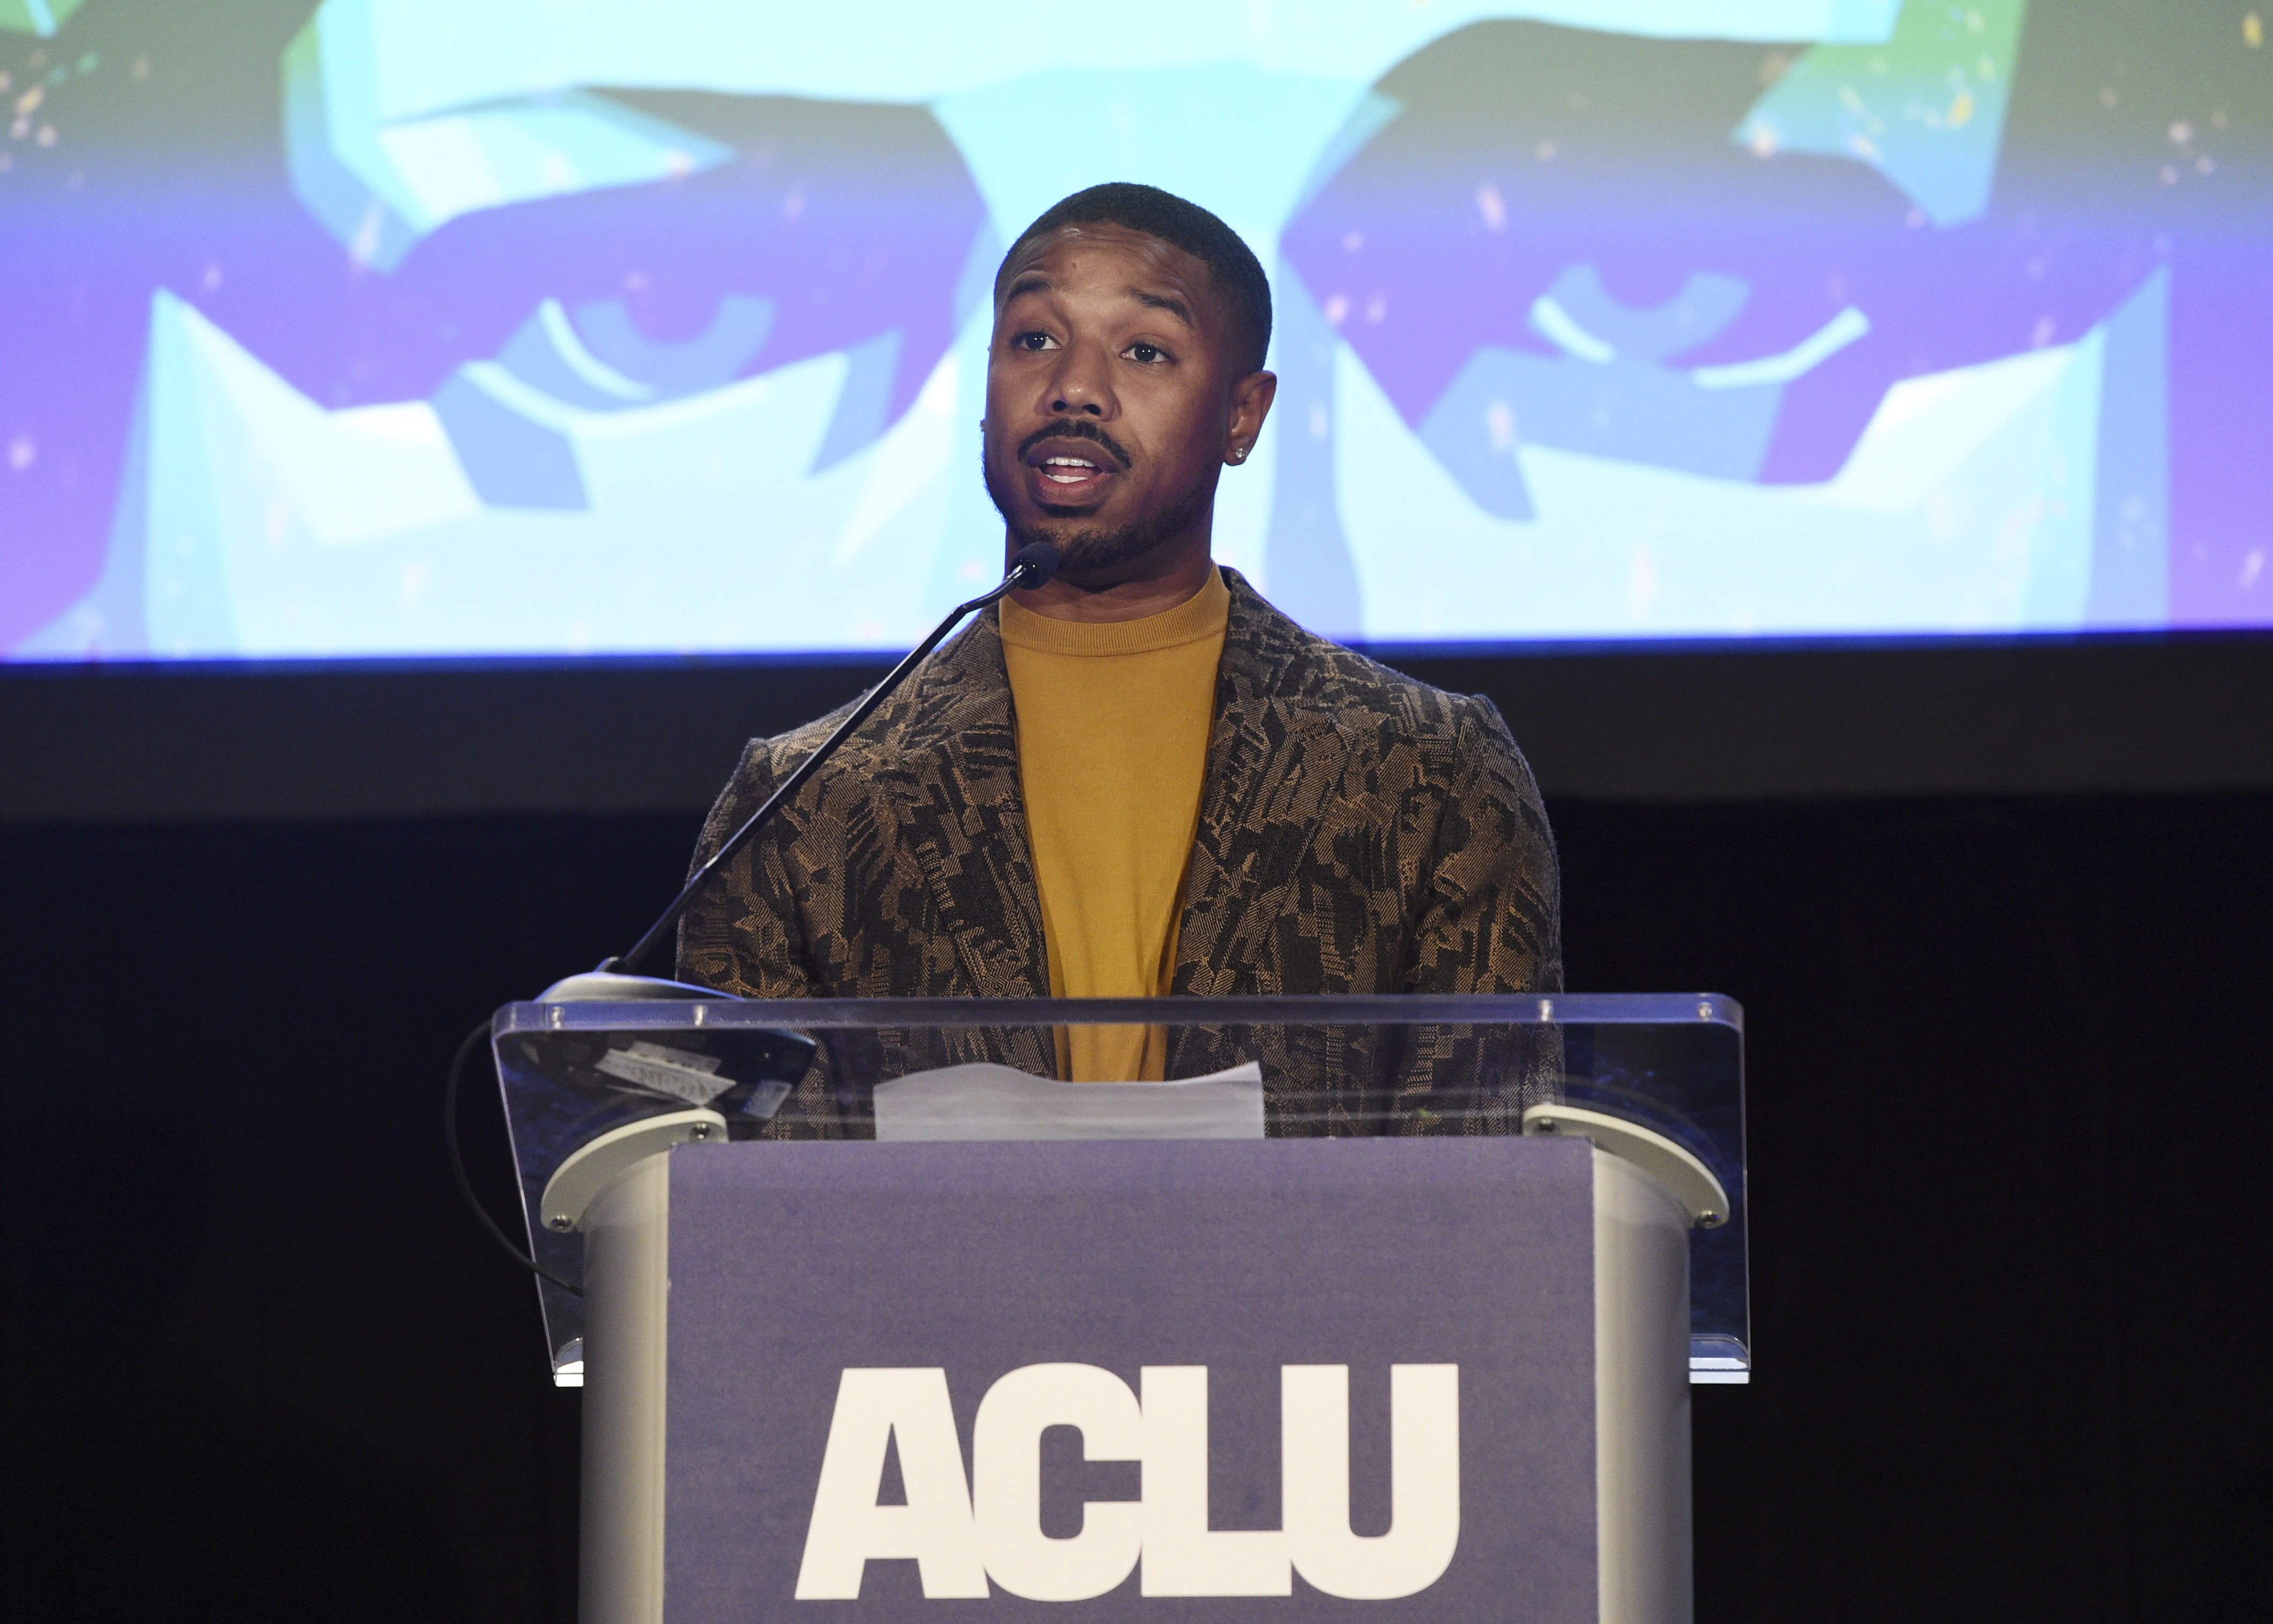 Actor Michael B. Jordan addresses the audience at the ACLU SoCal's 25th Annual Luncheon at the JW Marriott at LA Live, Friday, June 7, 2019, in Los Angeles. (Photo by Chris Pizzello/Invision/AP)